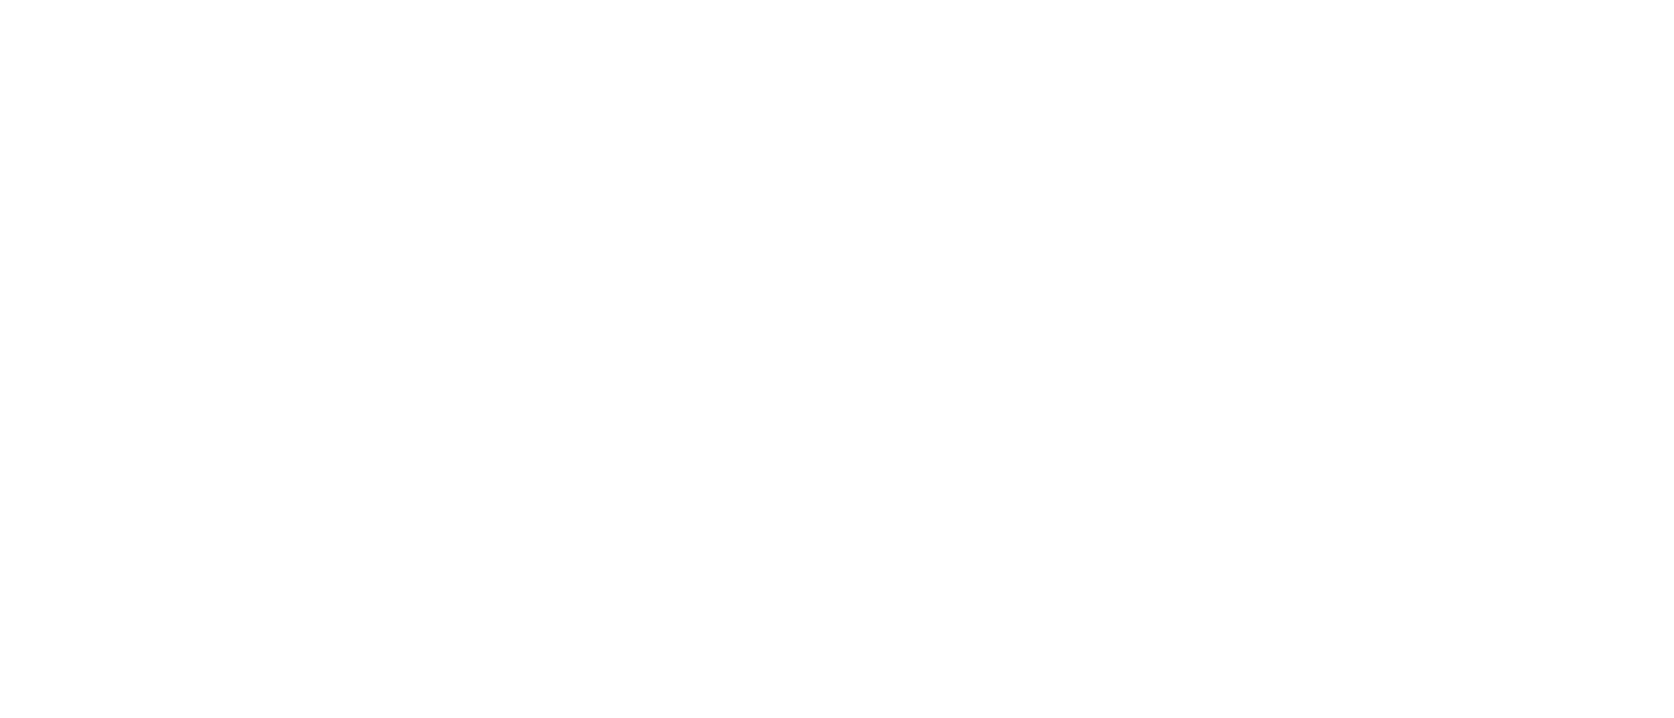 Media Relations for Cyclerion Therapeutics